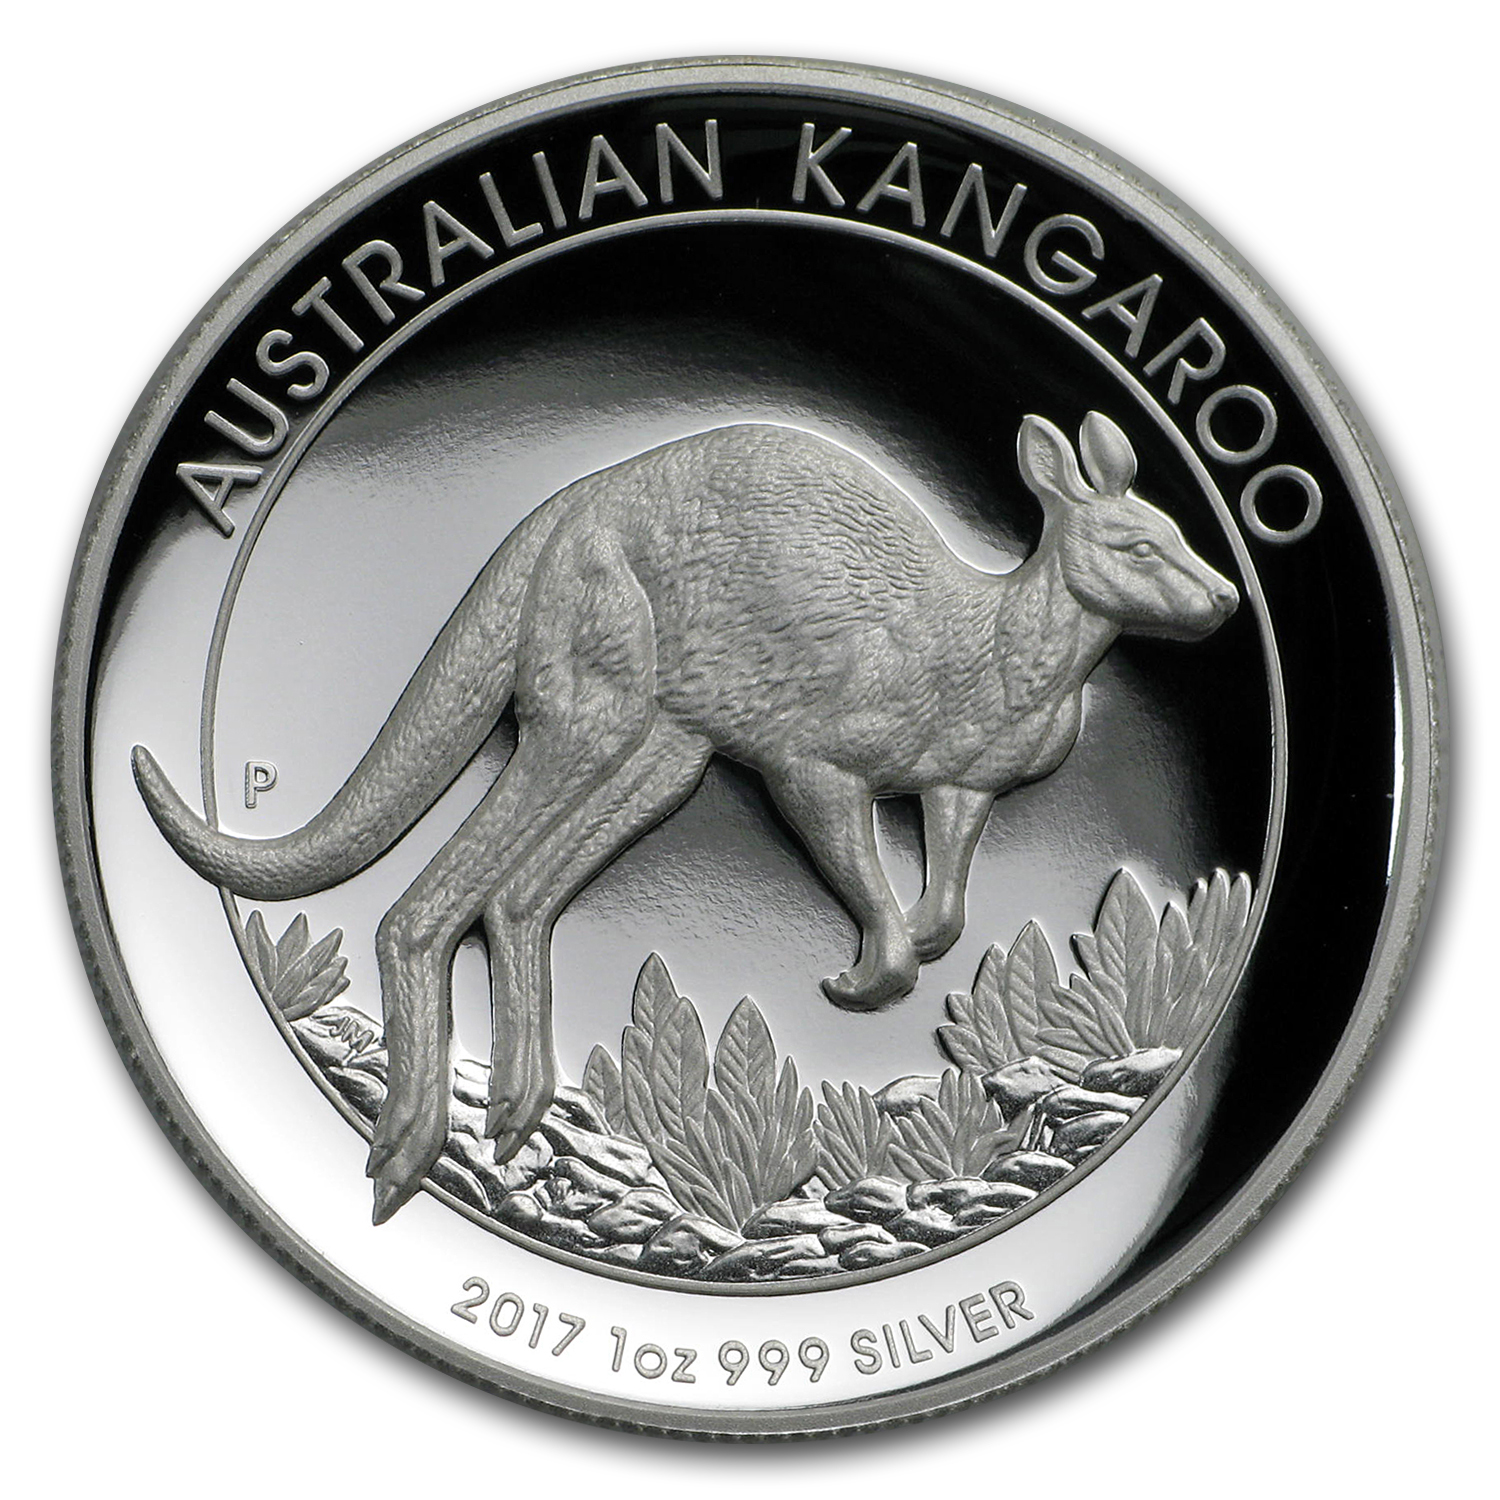 2017 Australia 1 oz Silver Kangaroo Proof (High Relief)